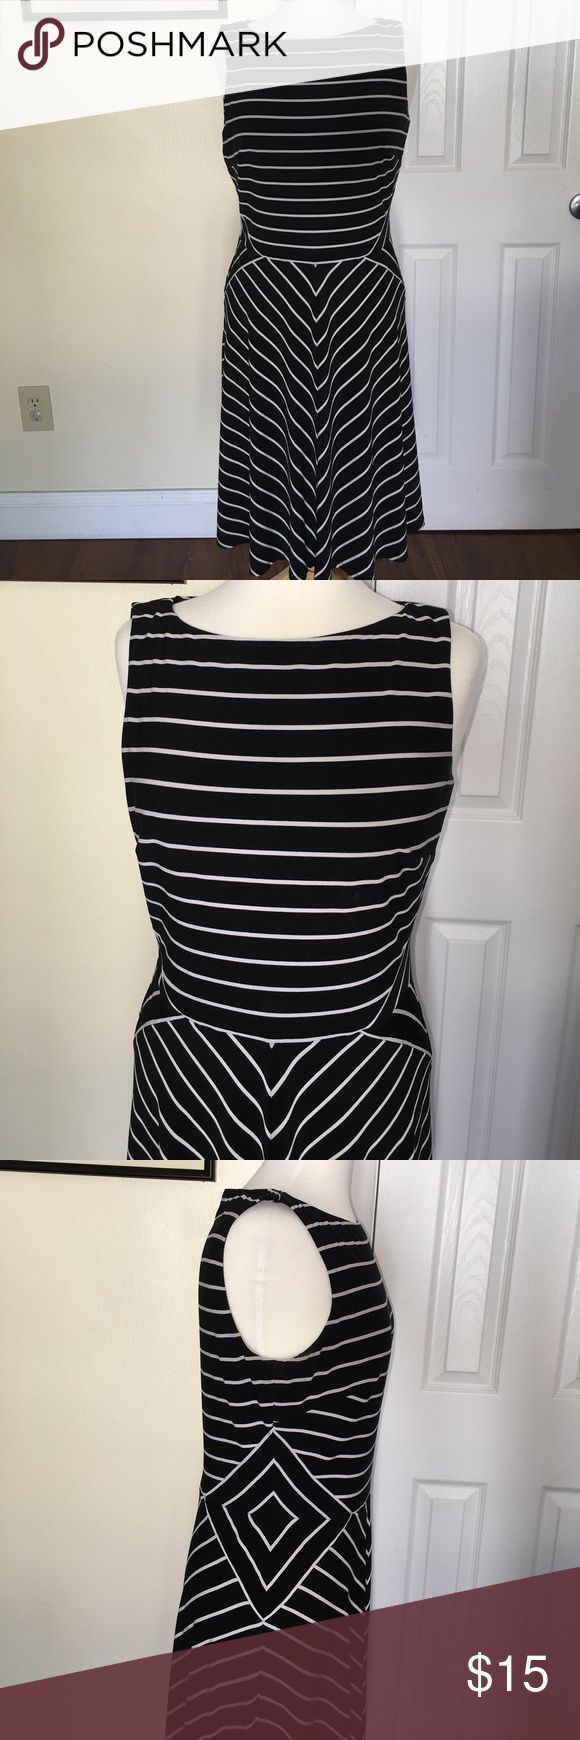 Classic Lauren Ralph Lauren Black & White Dress This classic, boat neck black and white striped dress is flattering and flirty. Wear to work with a jacket and throw on white adidas or your favorite sandals and floppy hat for the weekend! It's in gently, good used condition. Top is fitted and bottom is flowy/flared. Make me an offer! Lauren Ralph Lauren Dresses